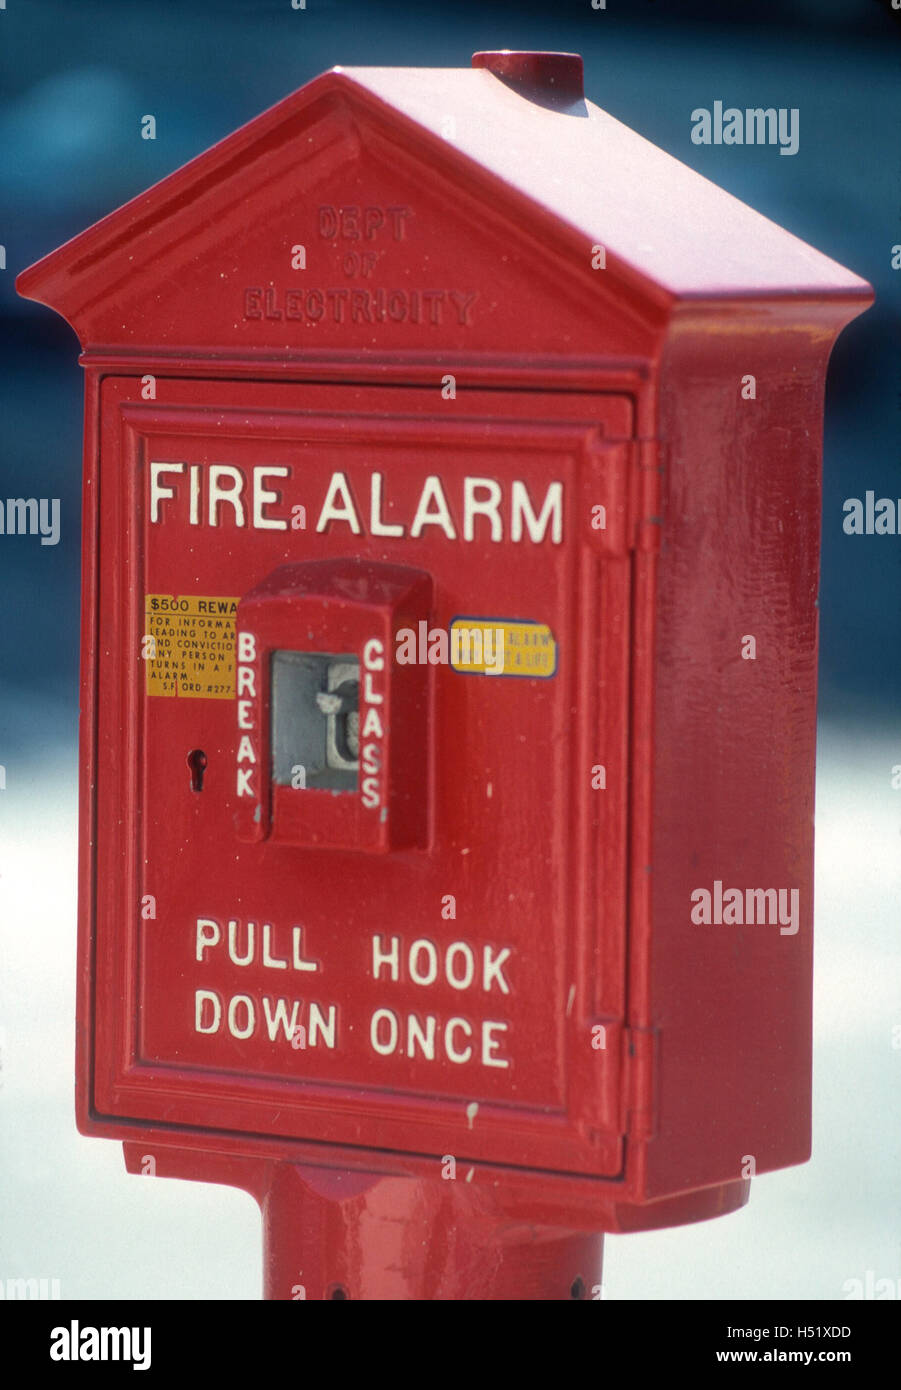 FIRE ALARM in USA - Stock Image